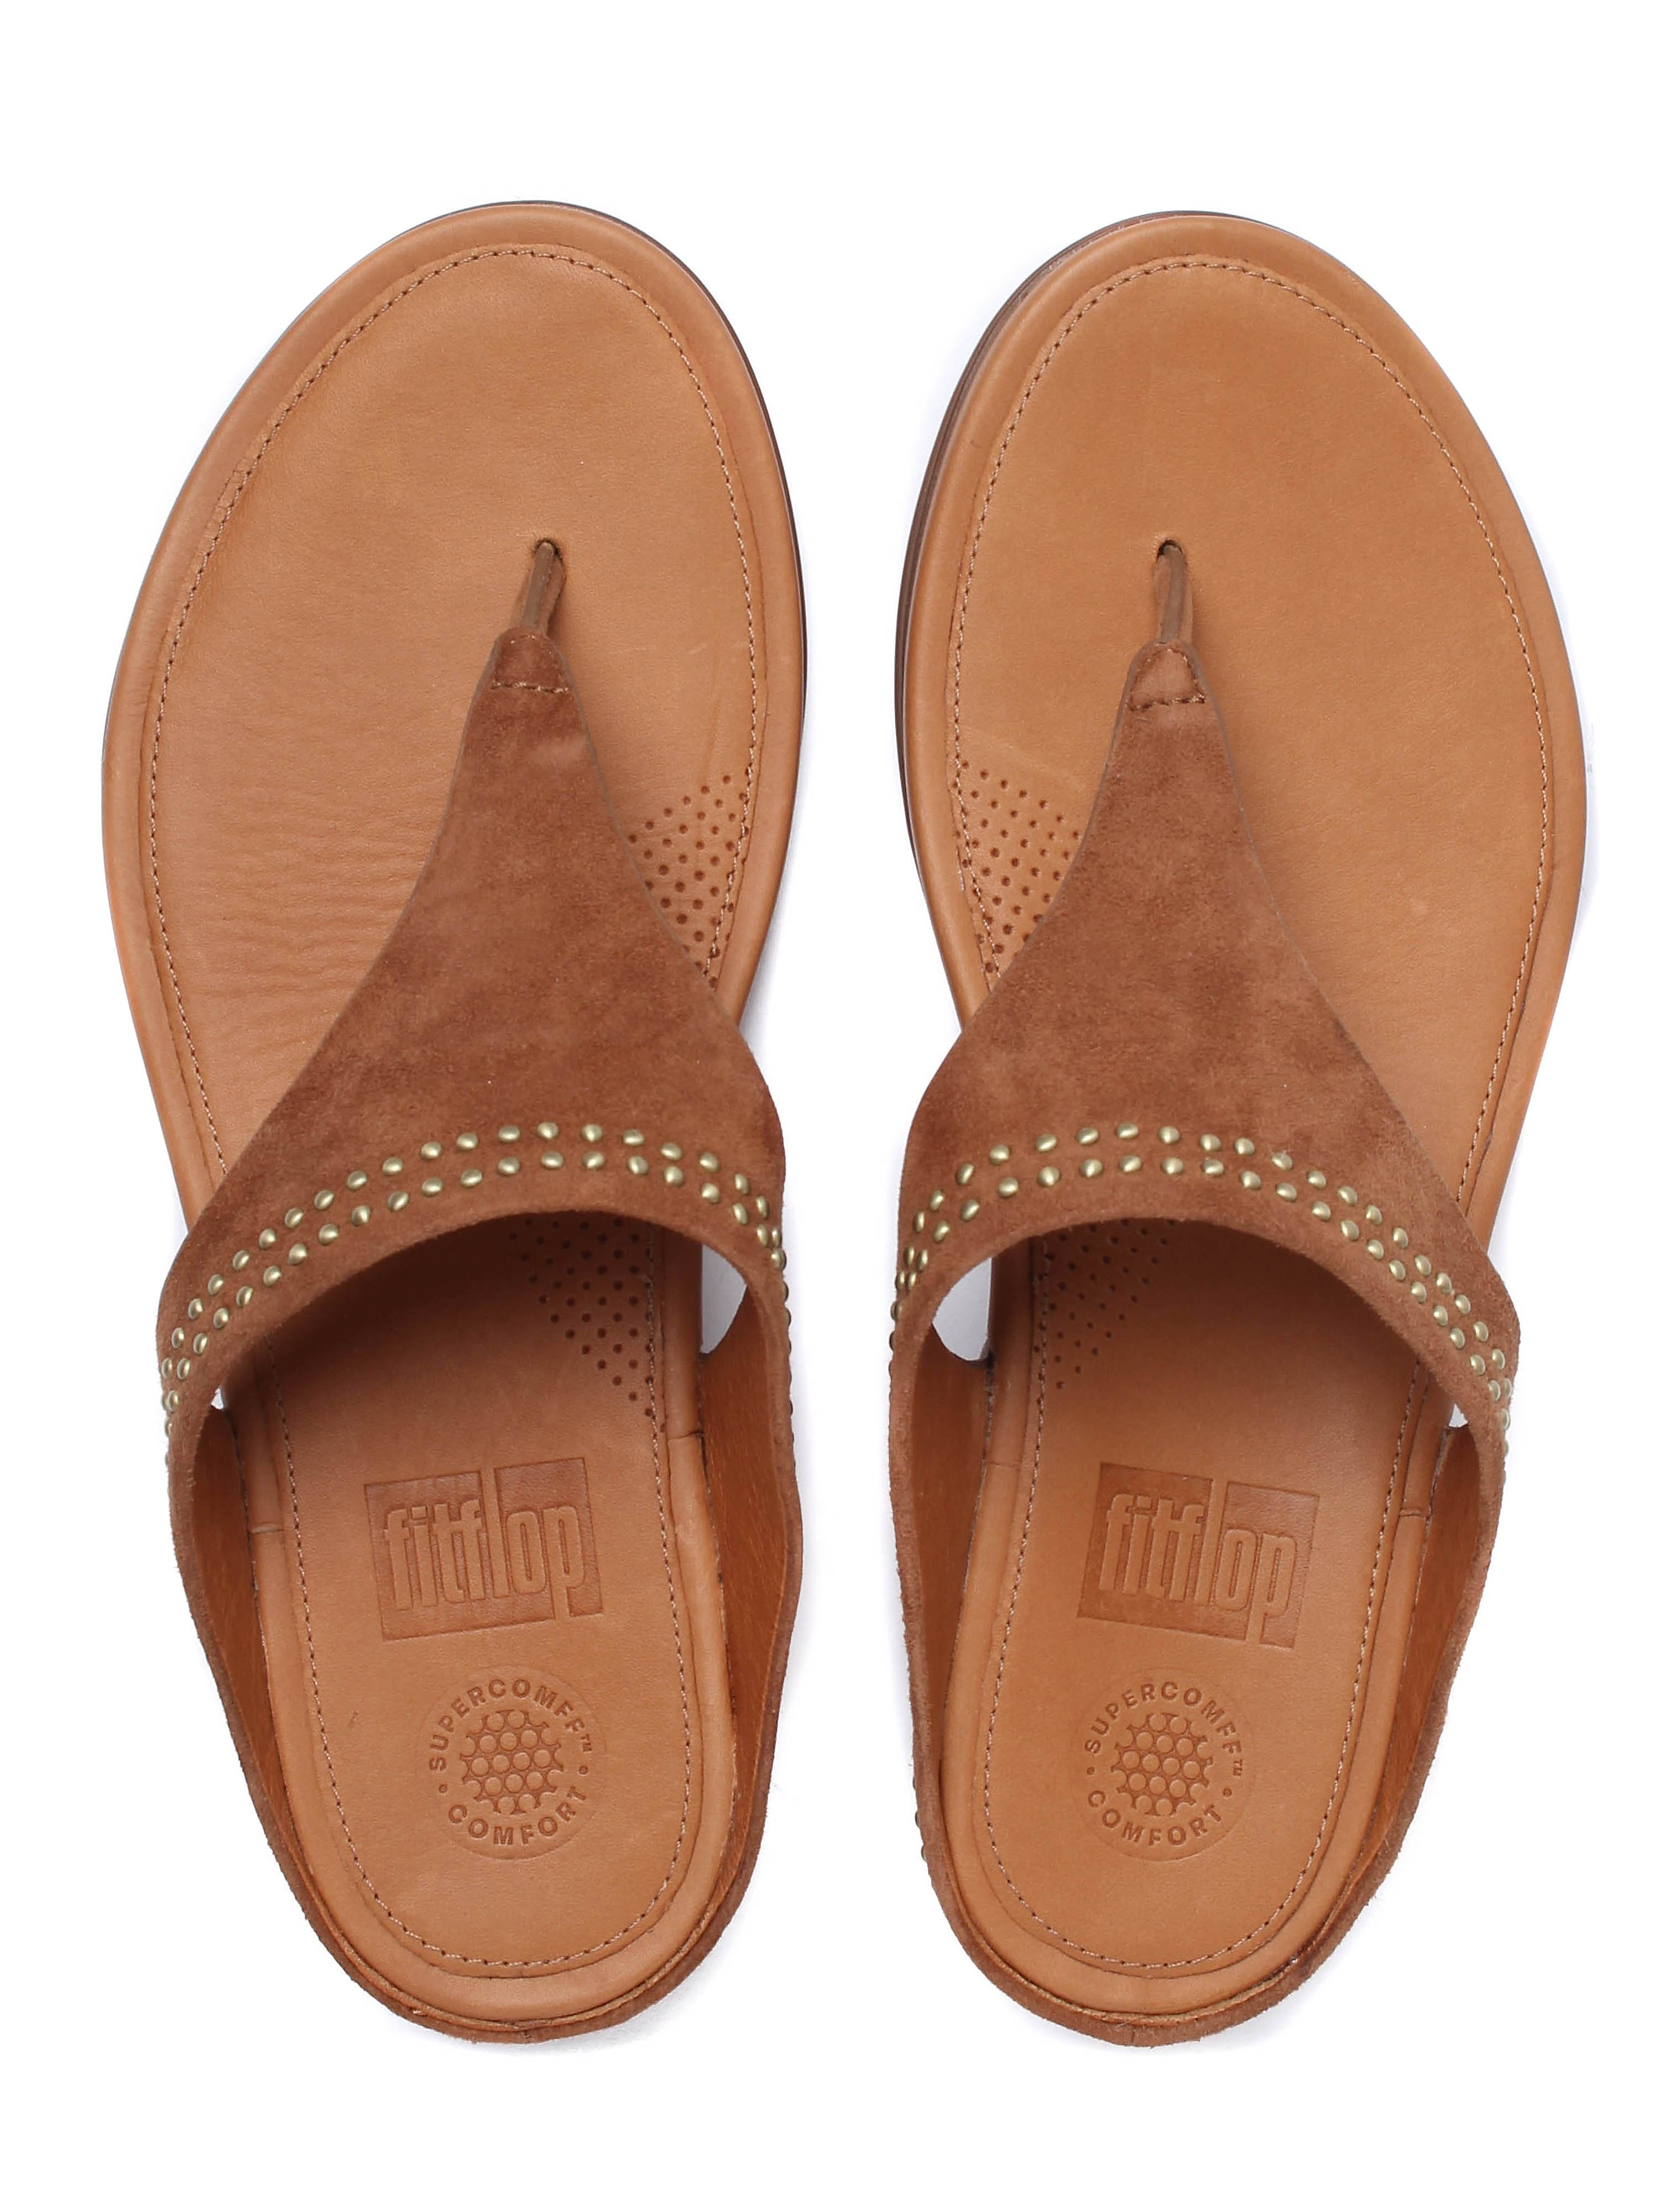 FitFlop Women's Banda Suede Toe-Post Sandals - Tan